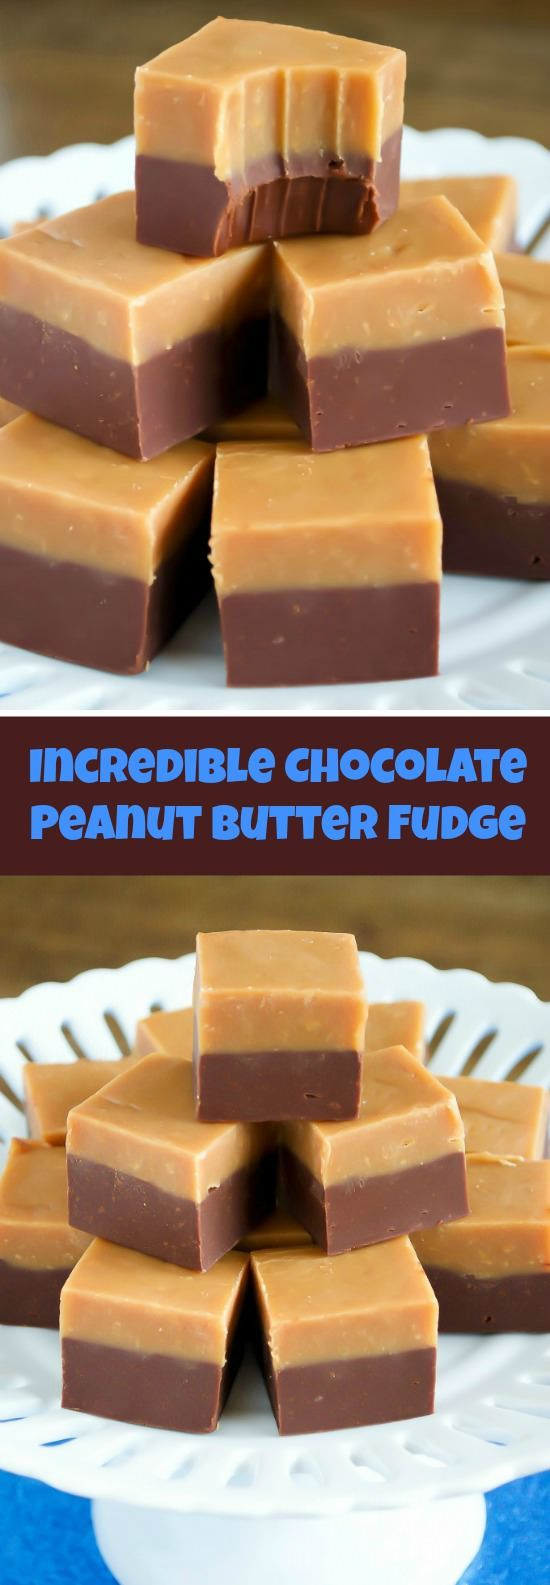 Incredible Chocolate Peanut Butter Fudge